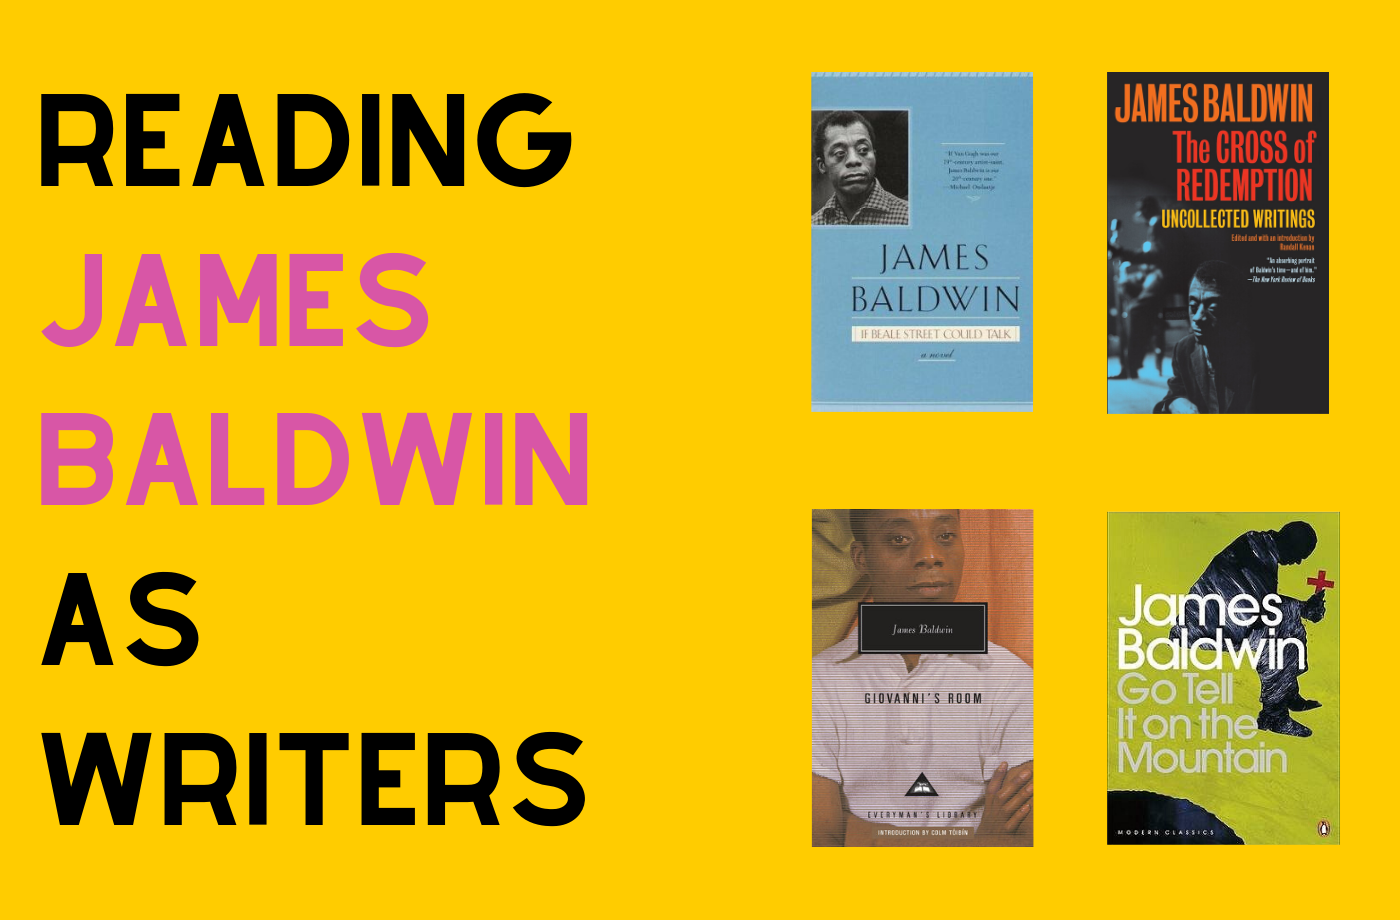 Catapult  classes: Gabrielle Bellot, 4 Weeks of Reading James Baldwin as Writers, Nonfiction, Fiction, Reading Group